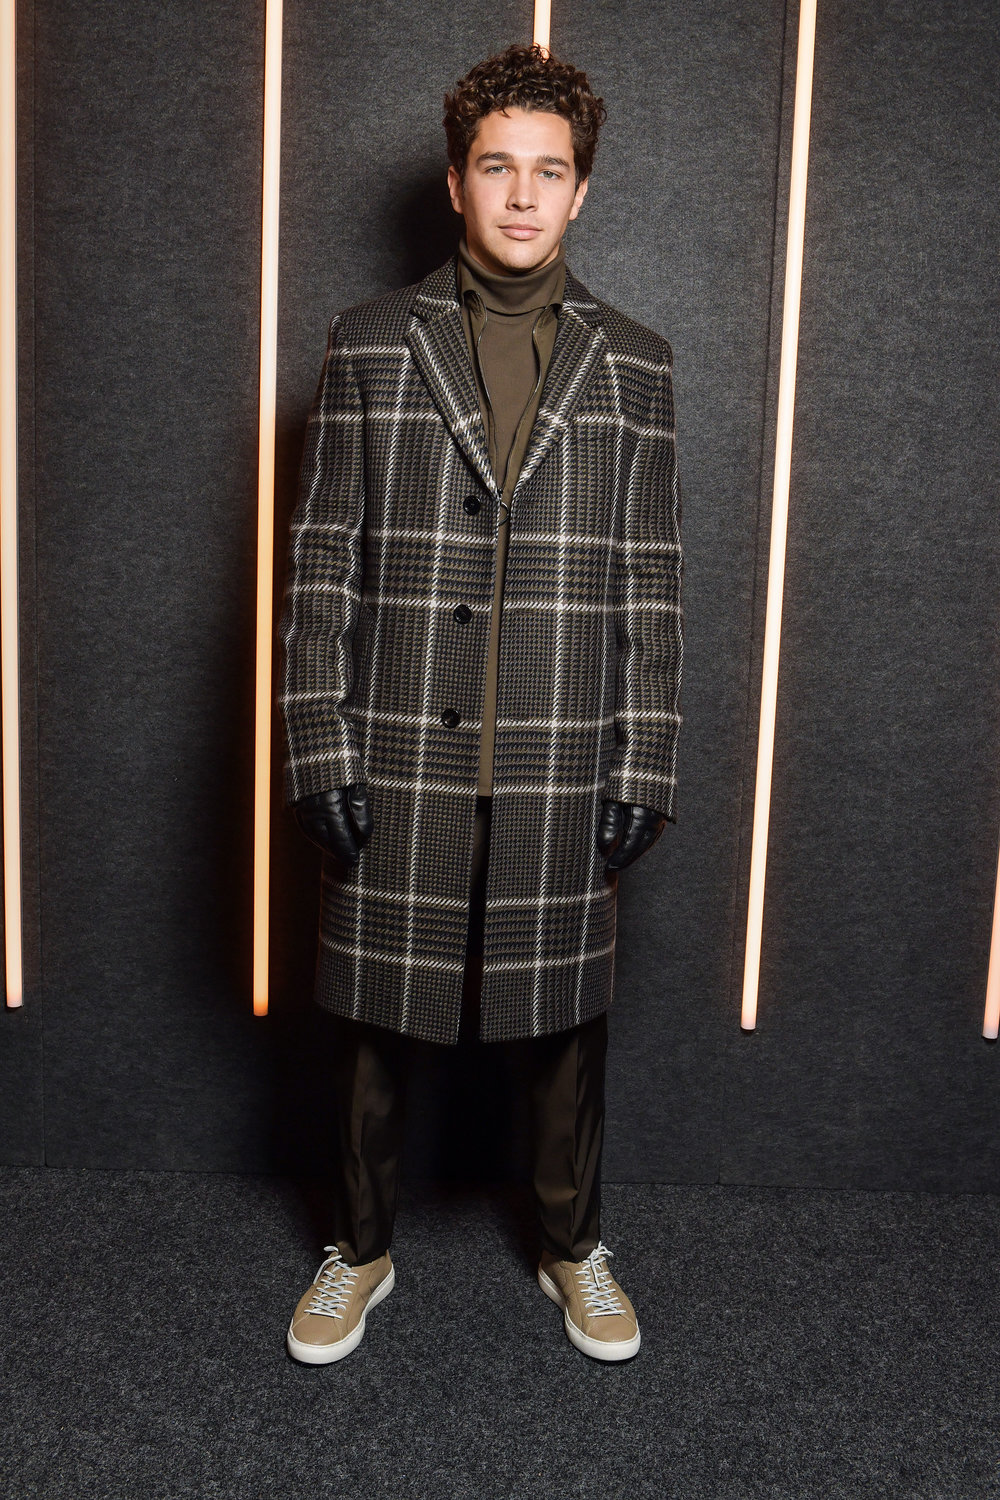 Austin Mahone backstage at the BOSS Fall/Winter 2019 show at Basketball City during New York Fashion Week on Wednesday, February 13, in New York City. Photography, Courtesy of BOSS.